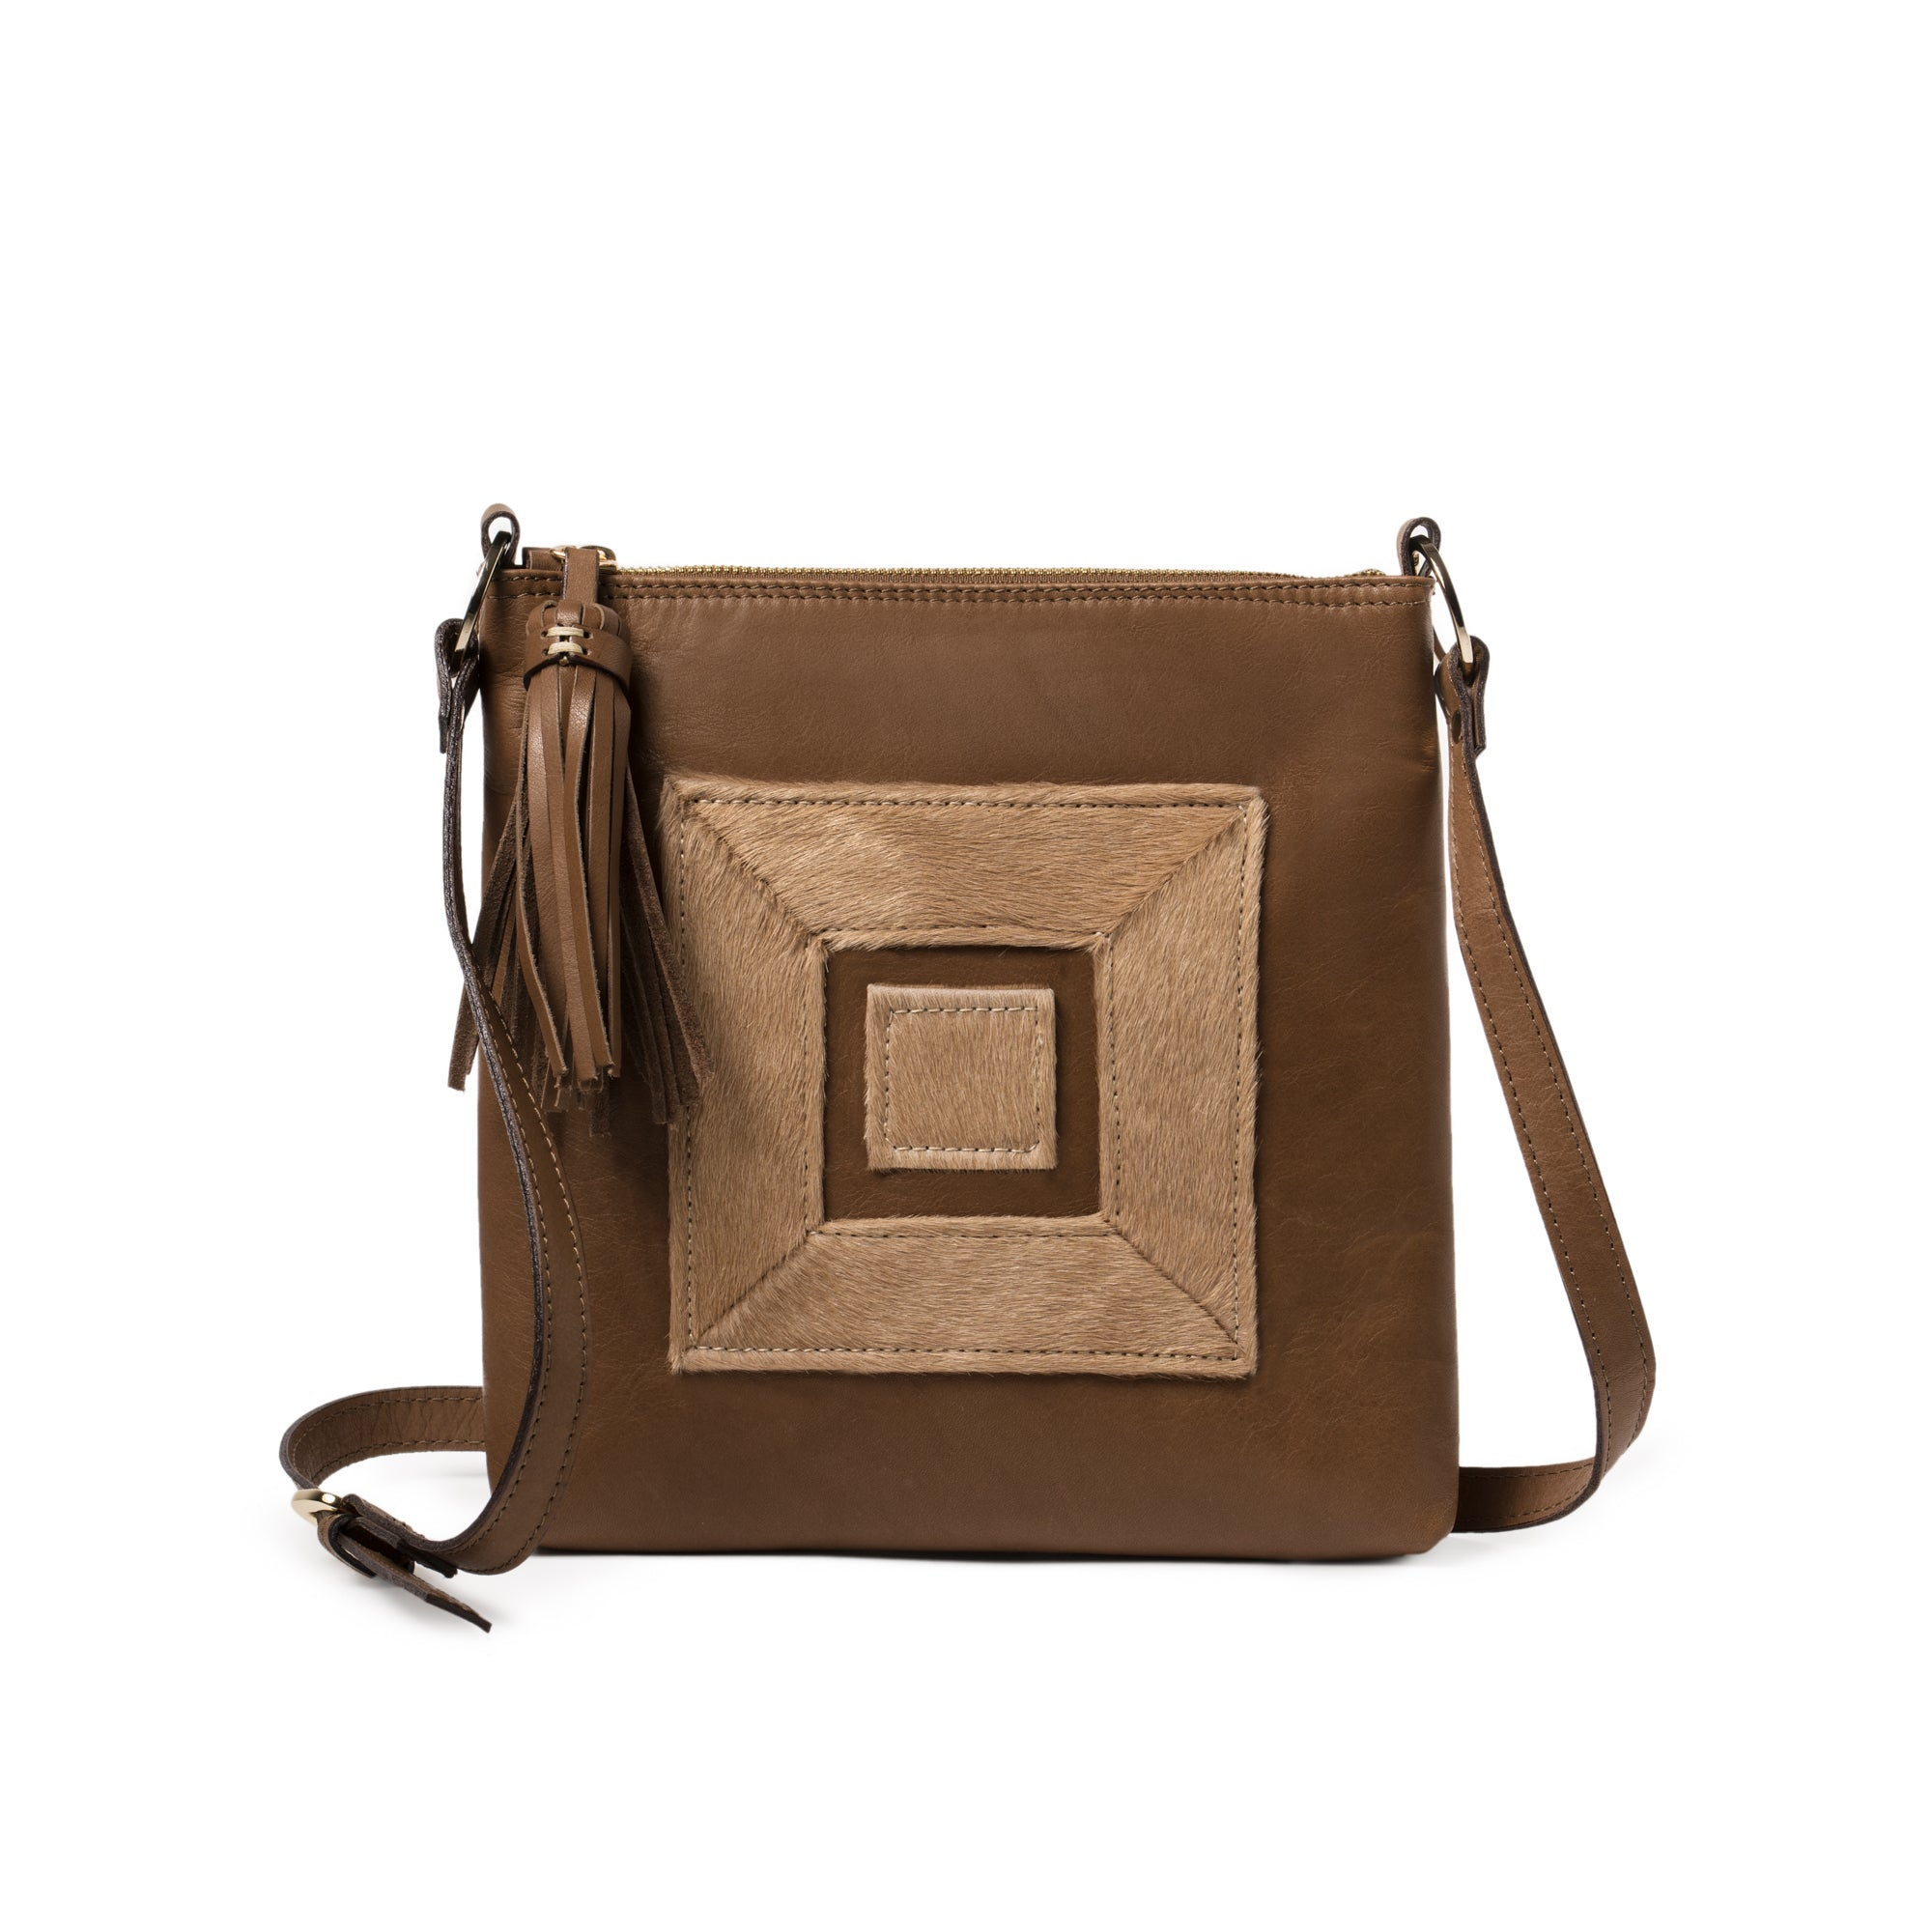 The Infinity Cross Body Bag